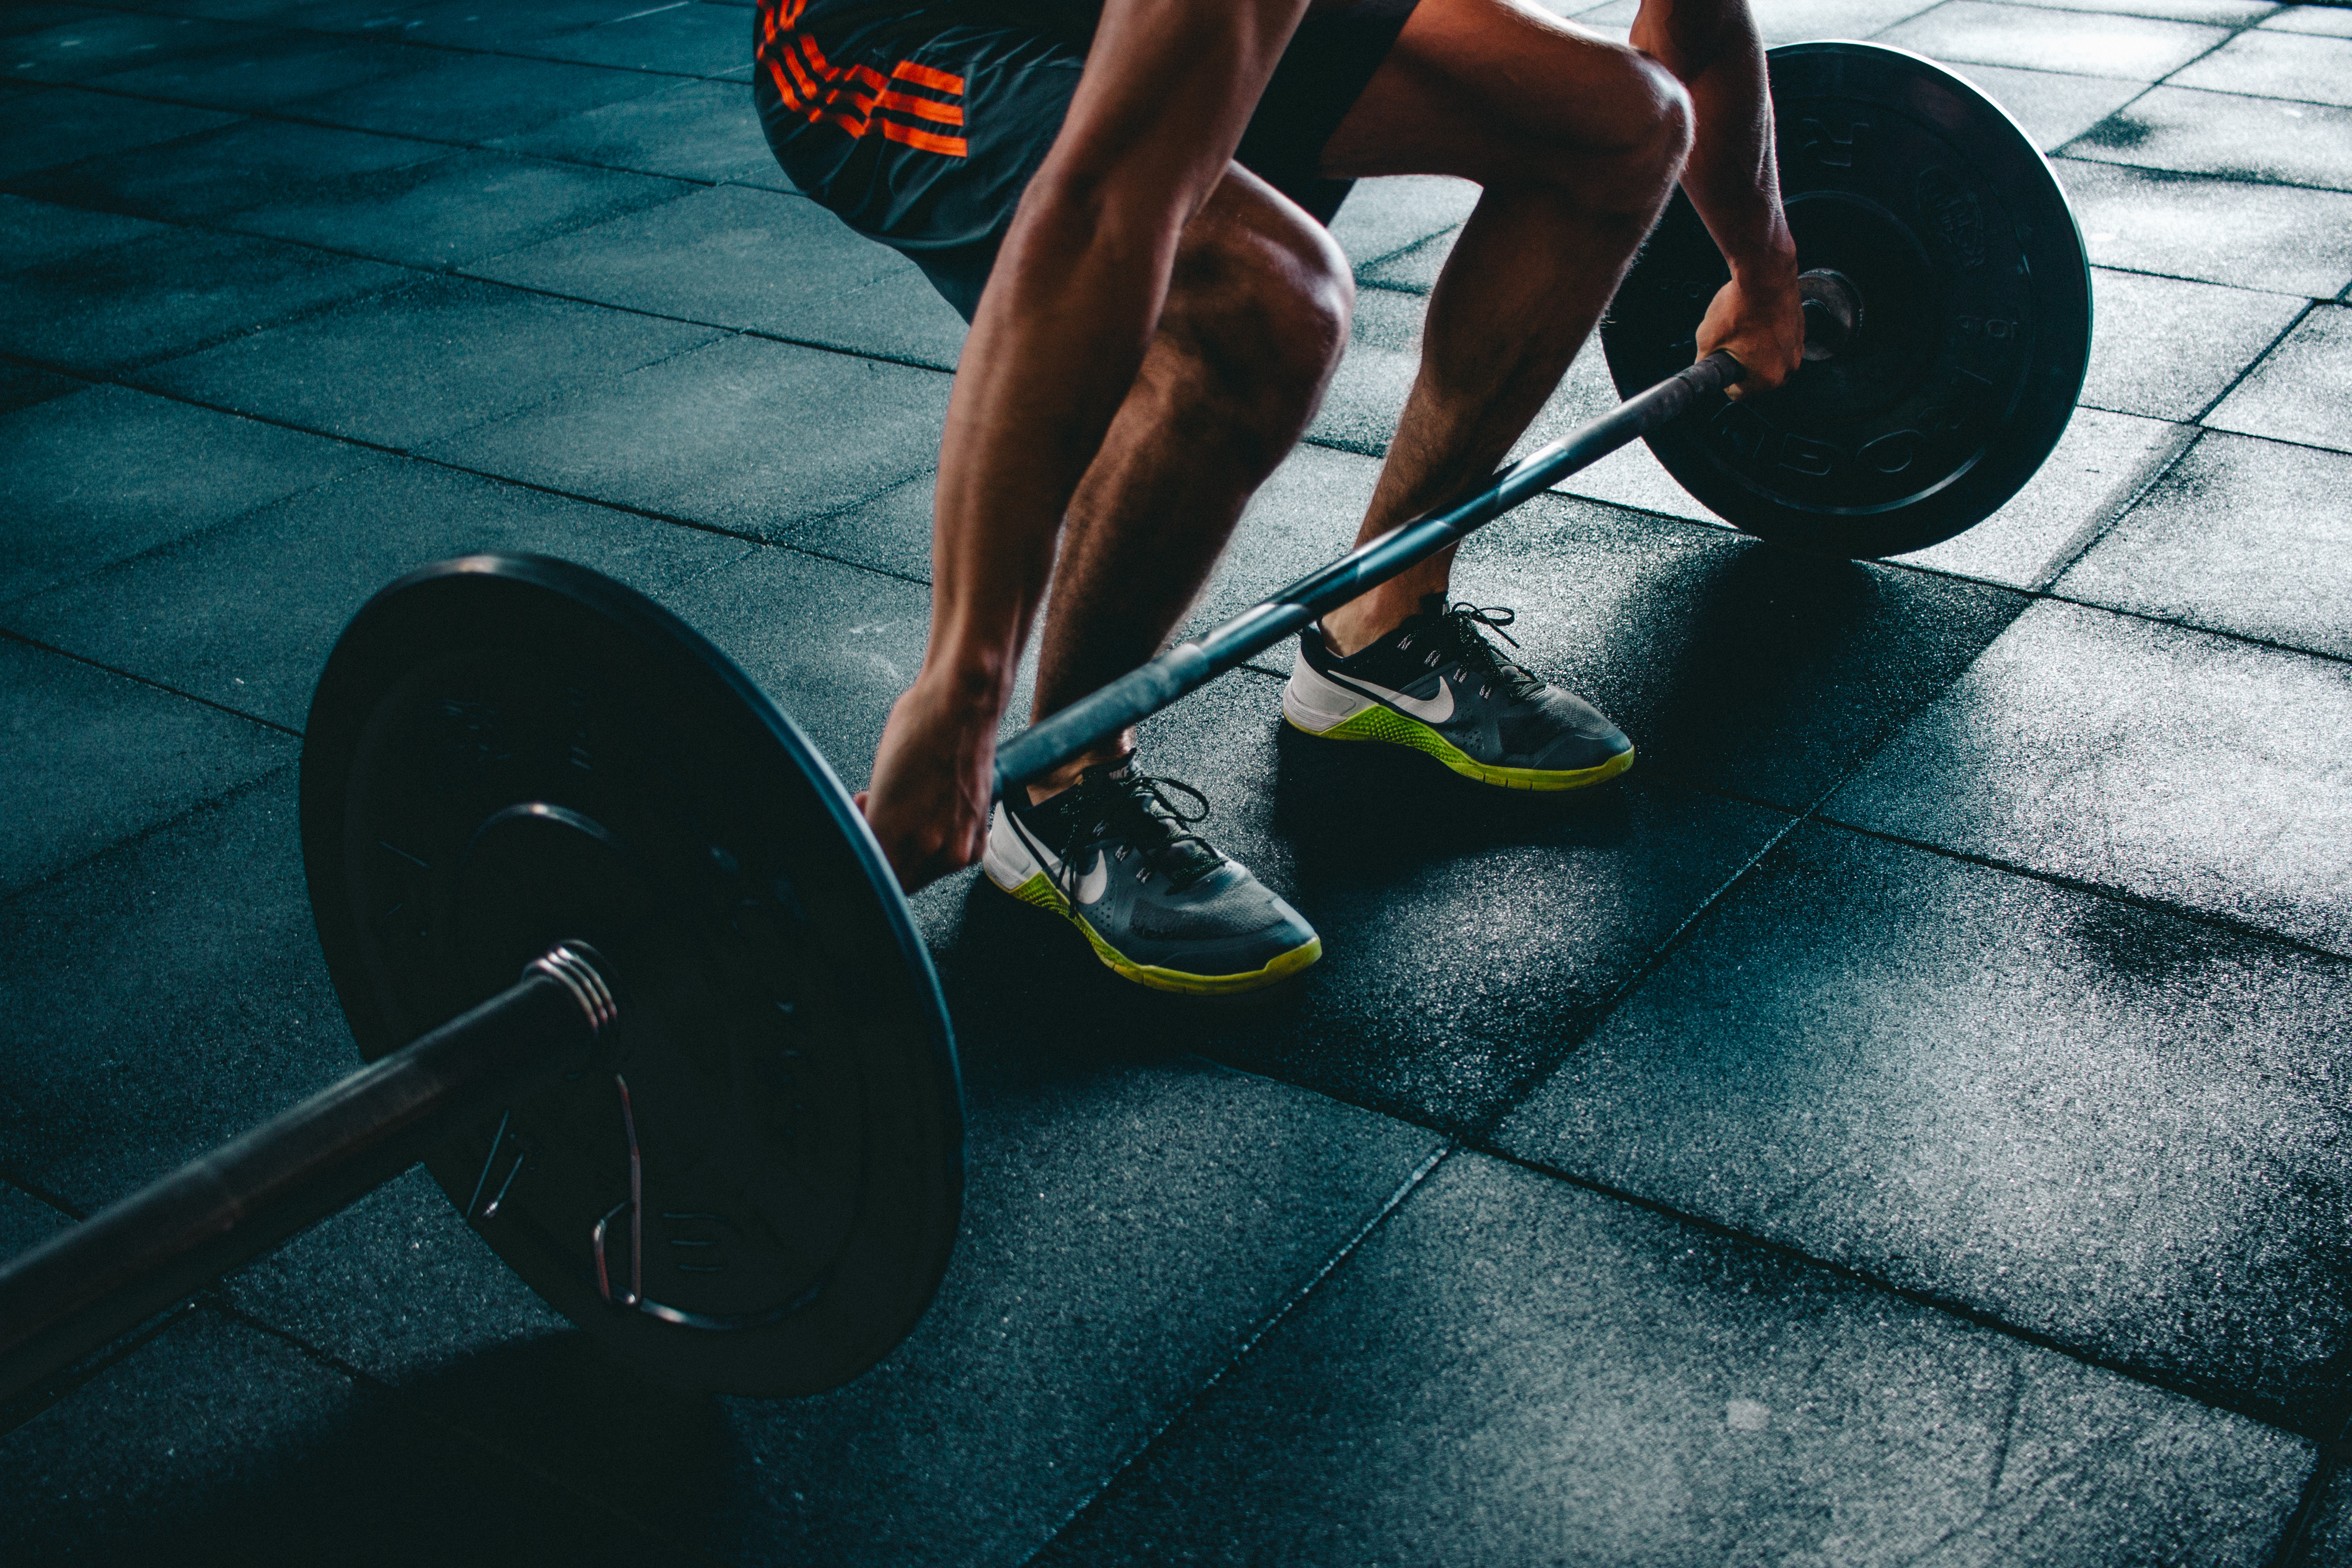 Gym pictures hq download free images on unsplash